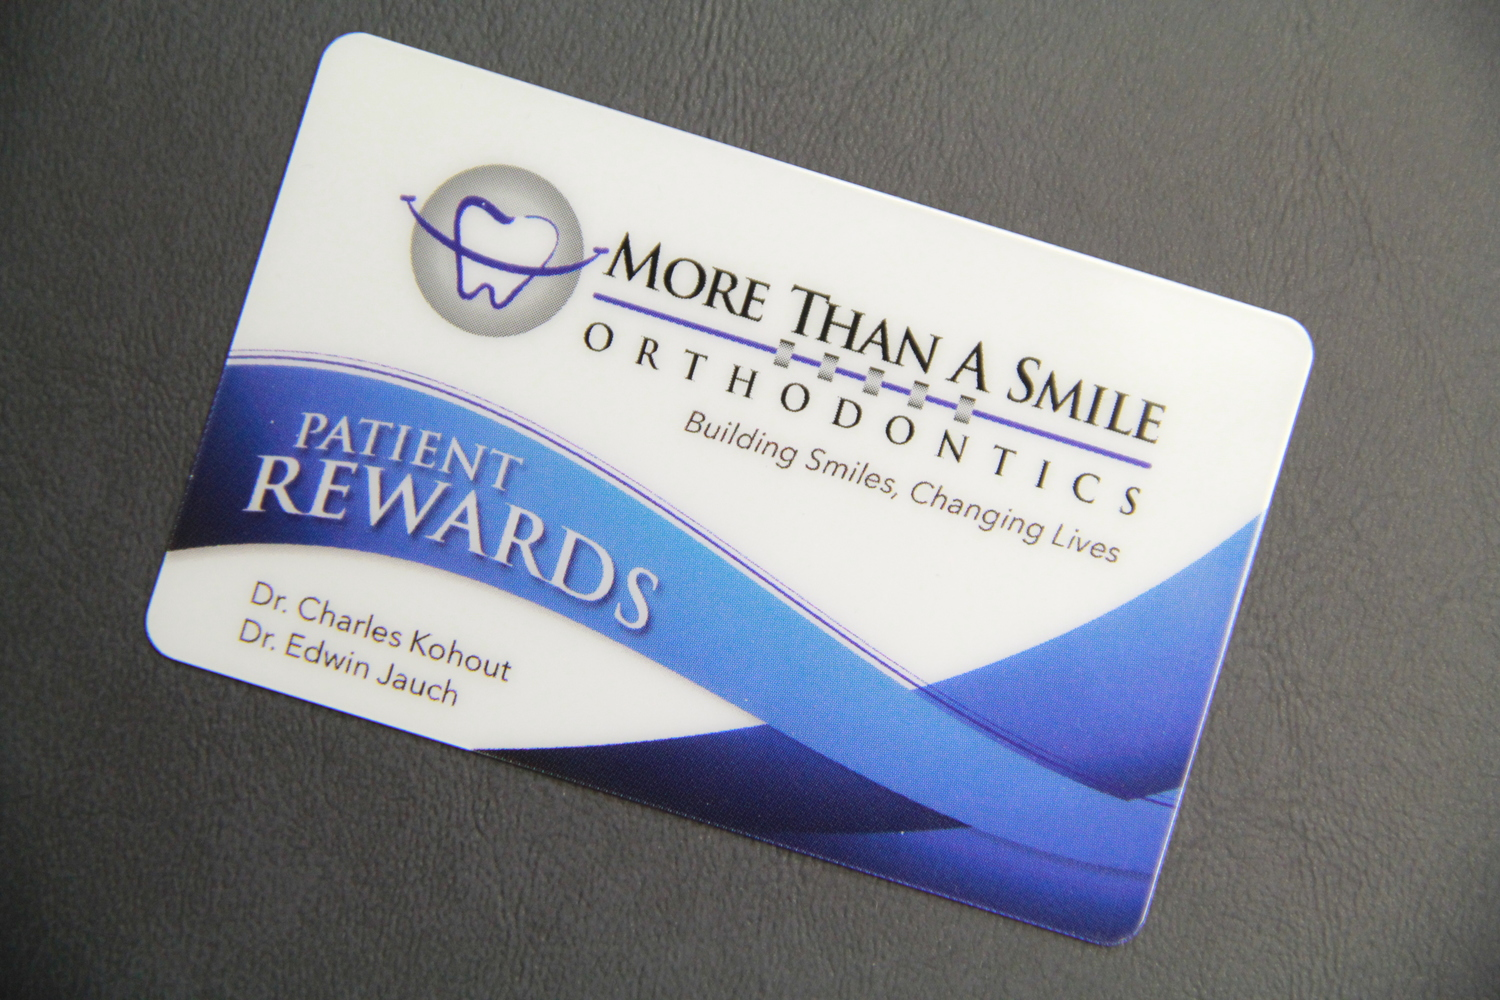 Patient Rewards — More Than a Smile Ortho